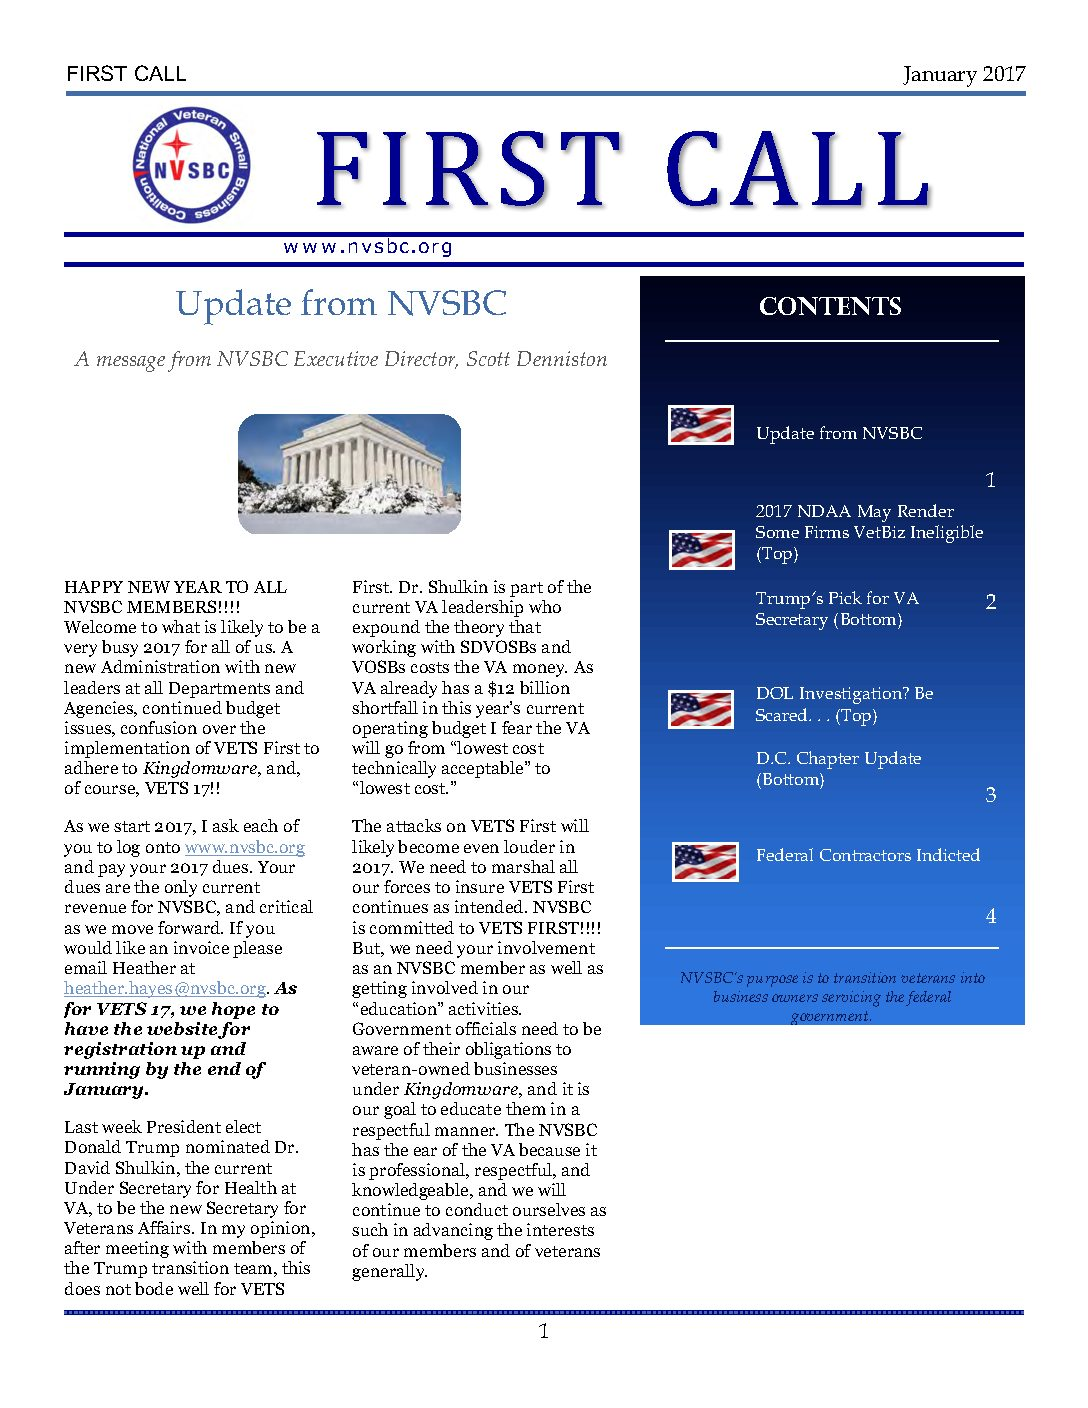 First Call January 2017